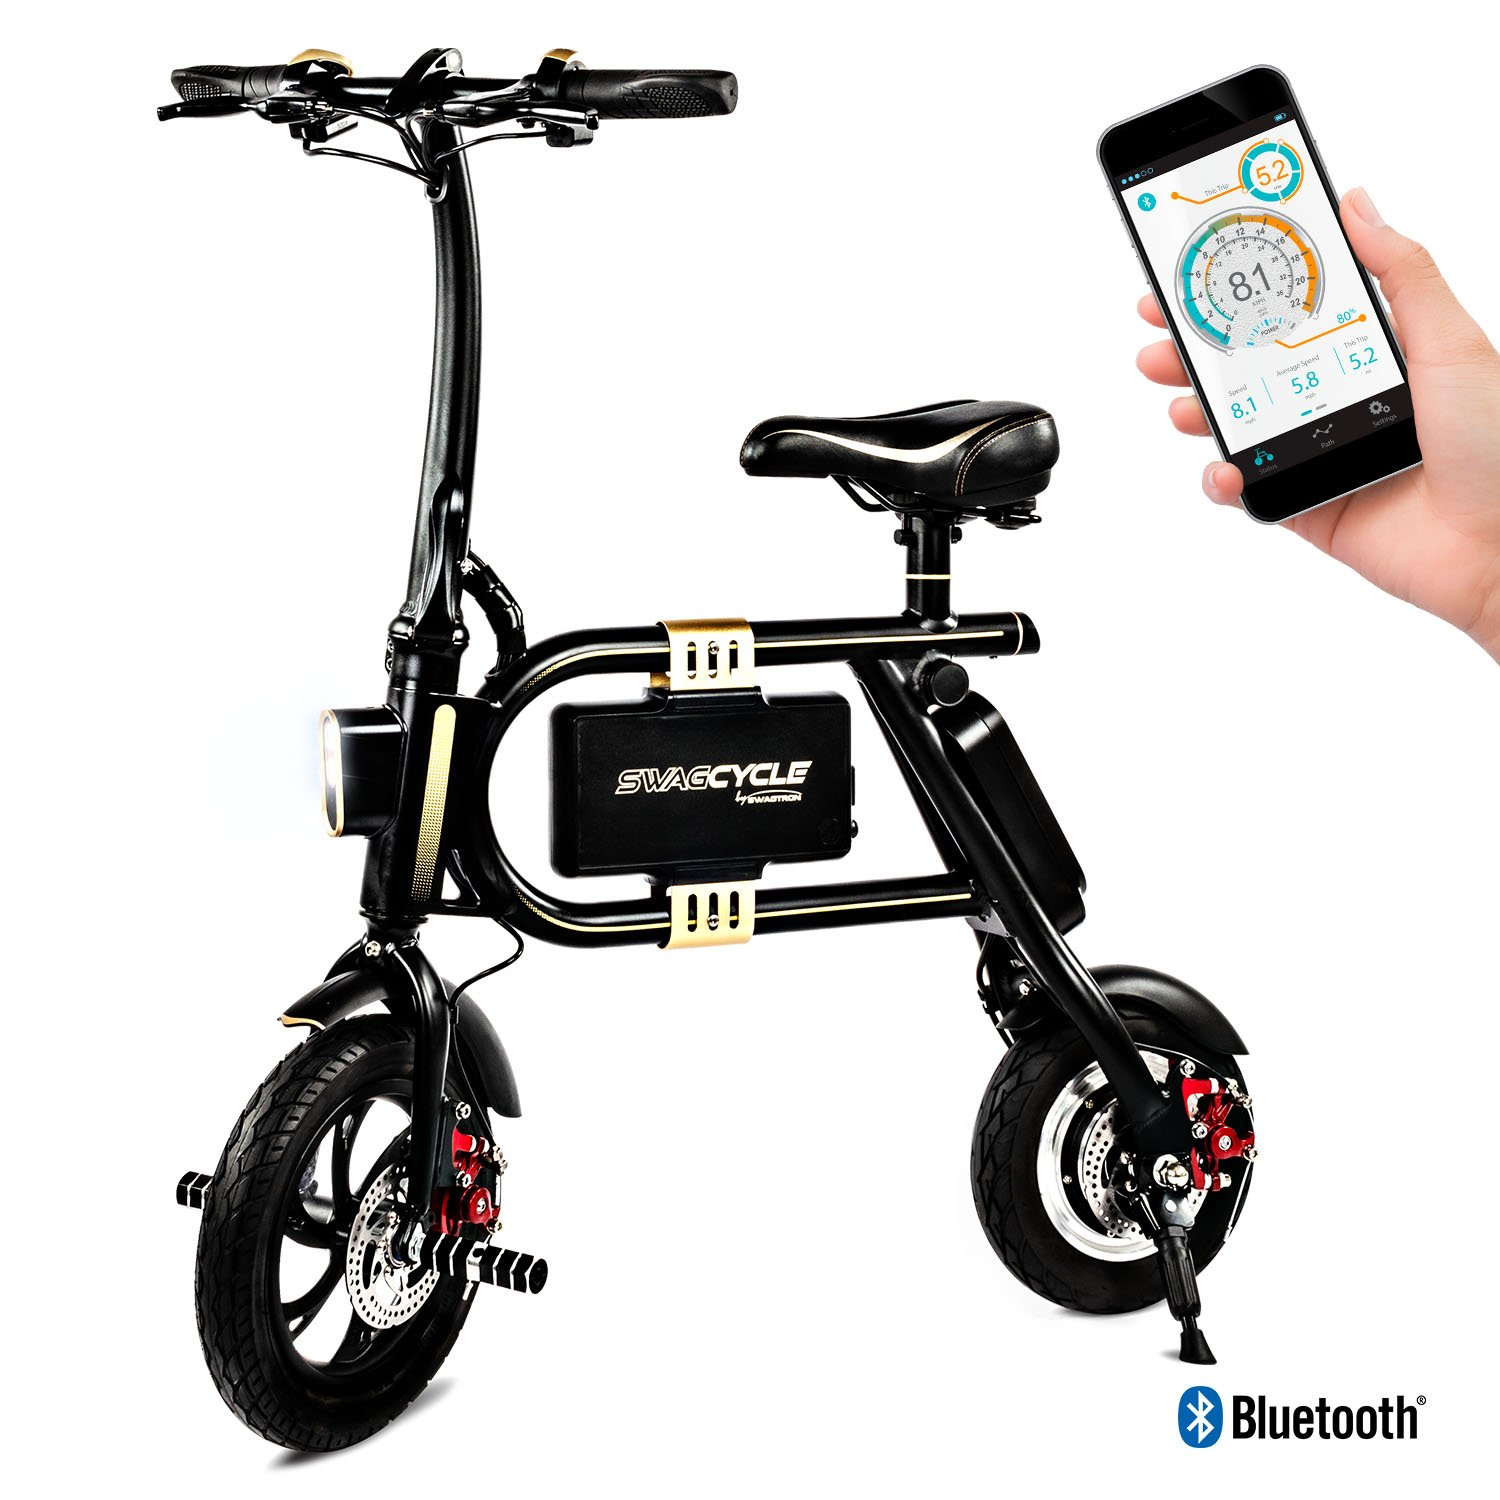 Electric Bicycles Eco Velo Swagwheel Smartwheel Hoverboard 65inch Silver Swagtron Swagcycle E Bike Folding Bicycle With 10 Mile Range Collapsible Frame